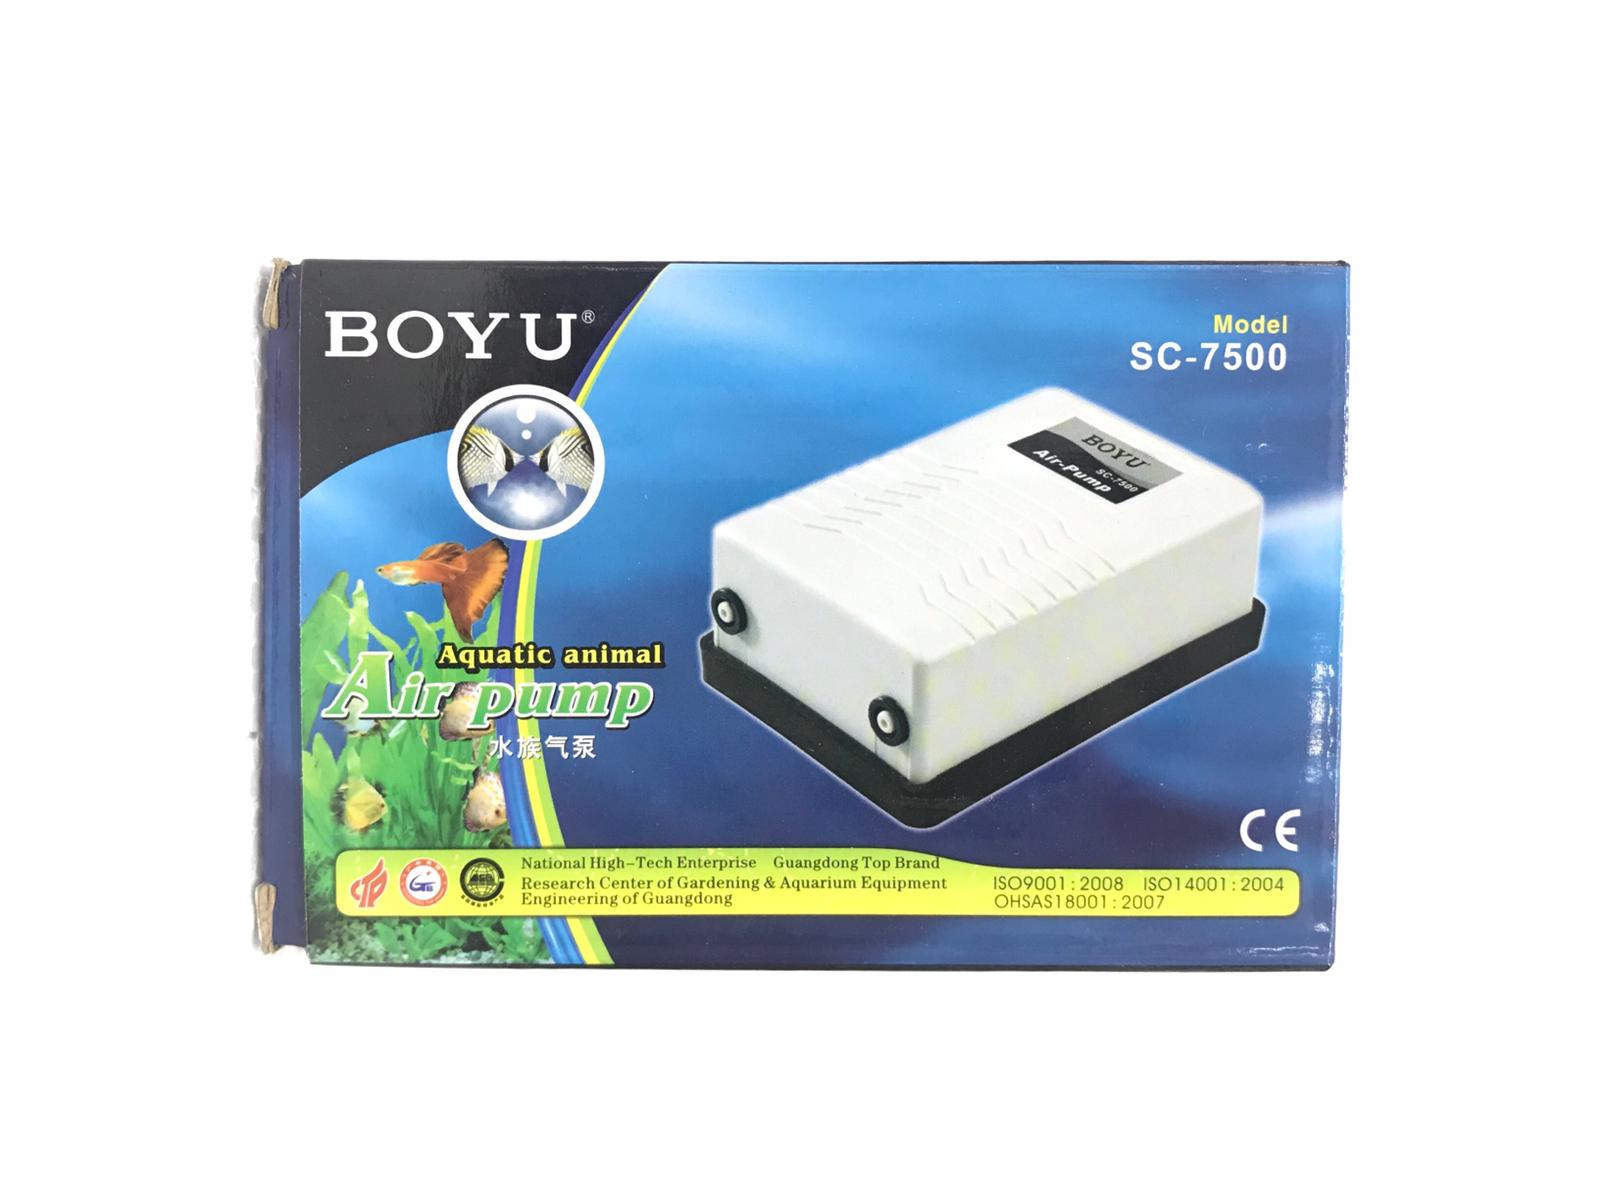 Boyu Aquatic Animal Air Pump SC-7500